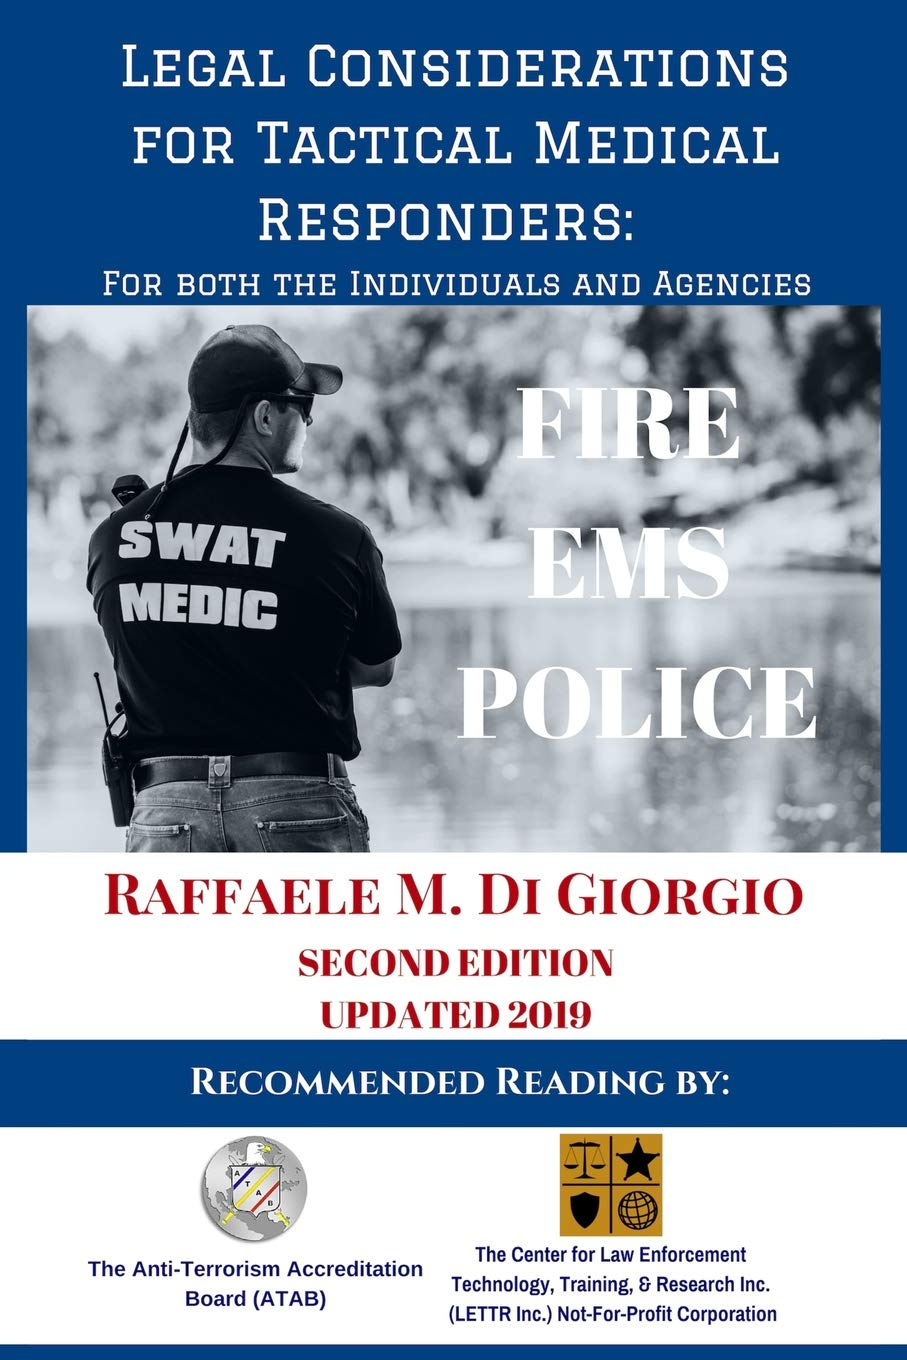 Download Legal Considerations For Tactical Medical Responders: For Both The Individuals And Agencies 